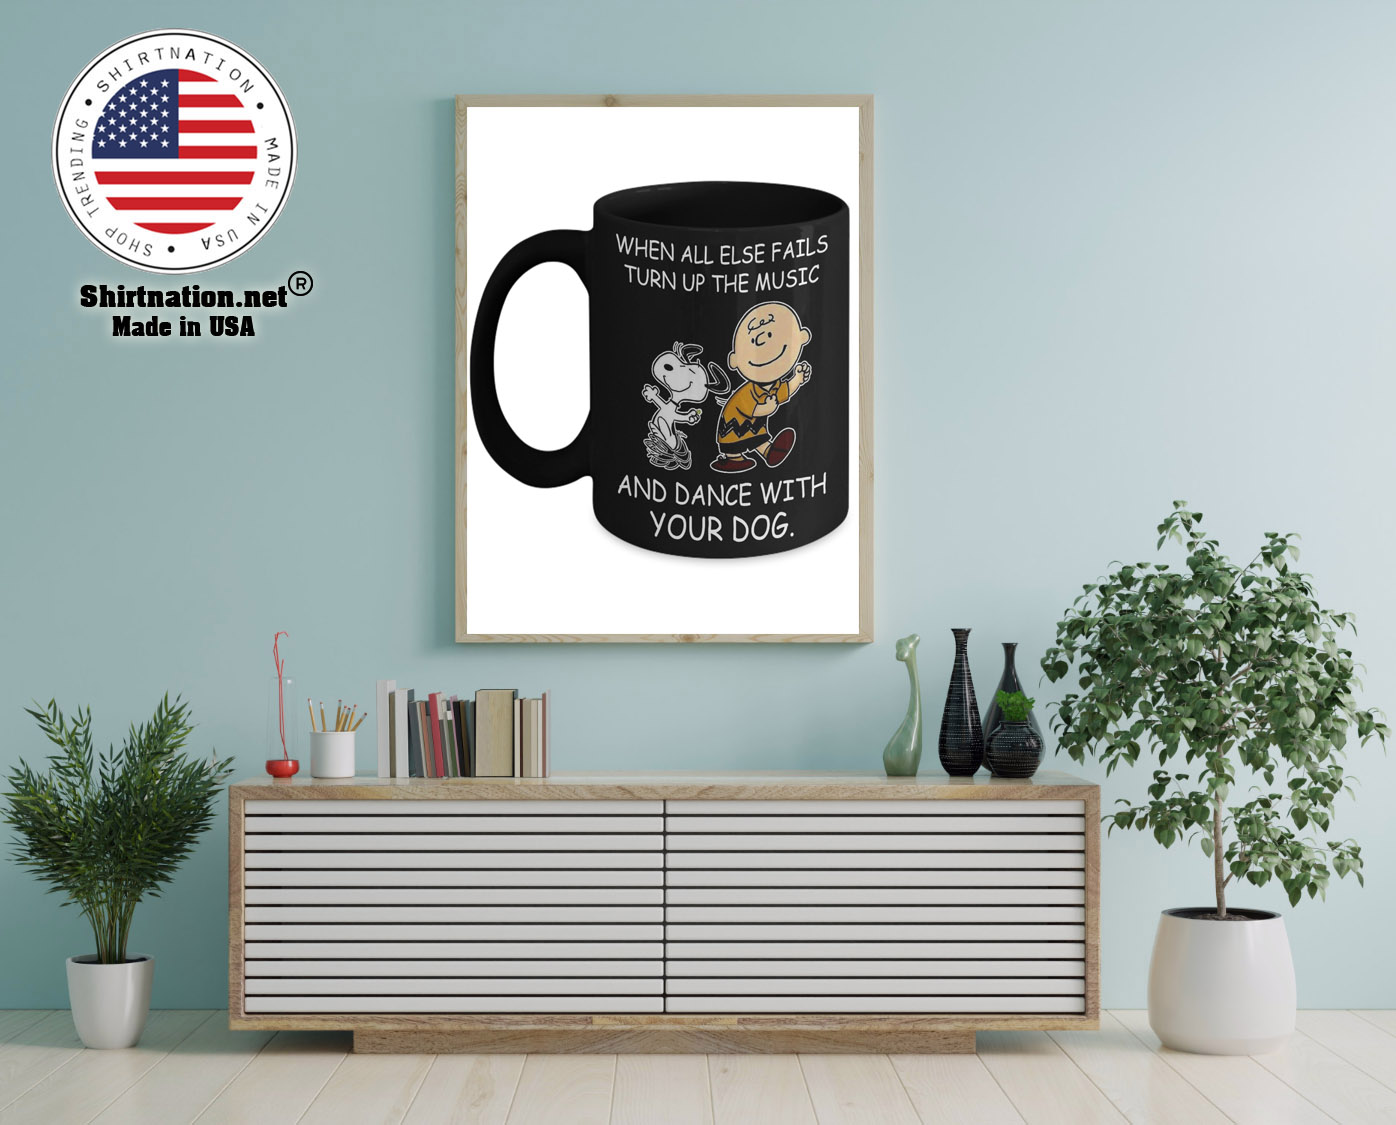 Peanut Snoopy When all else fails turn up the music and dance with your dog mug 12